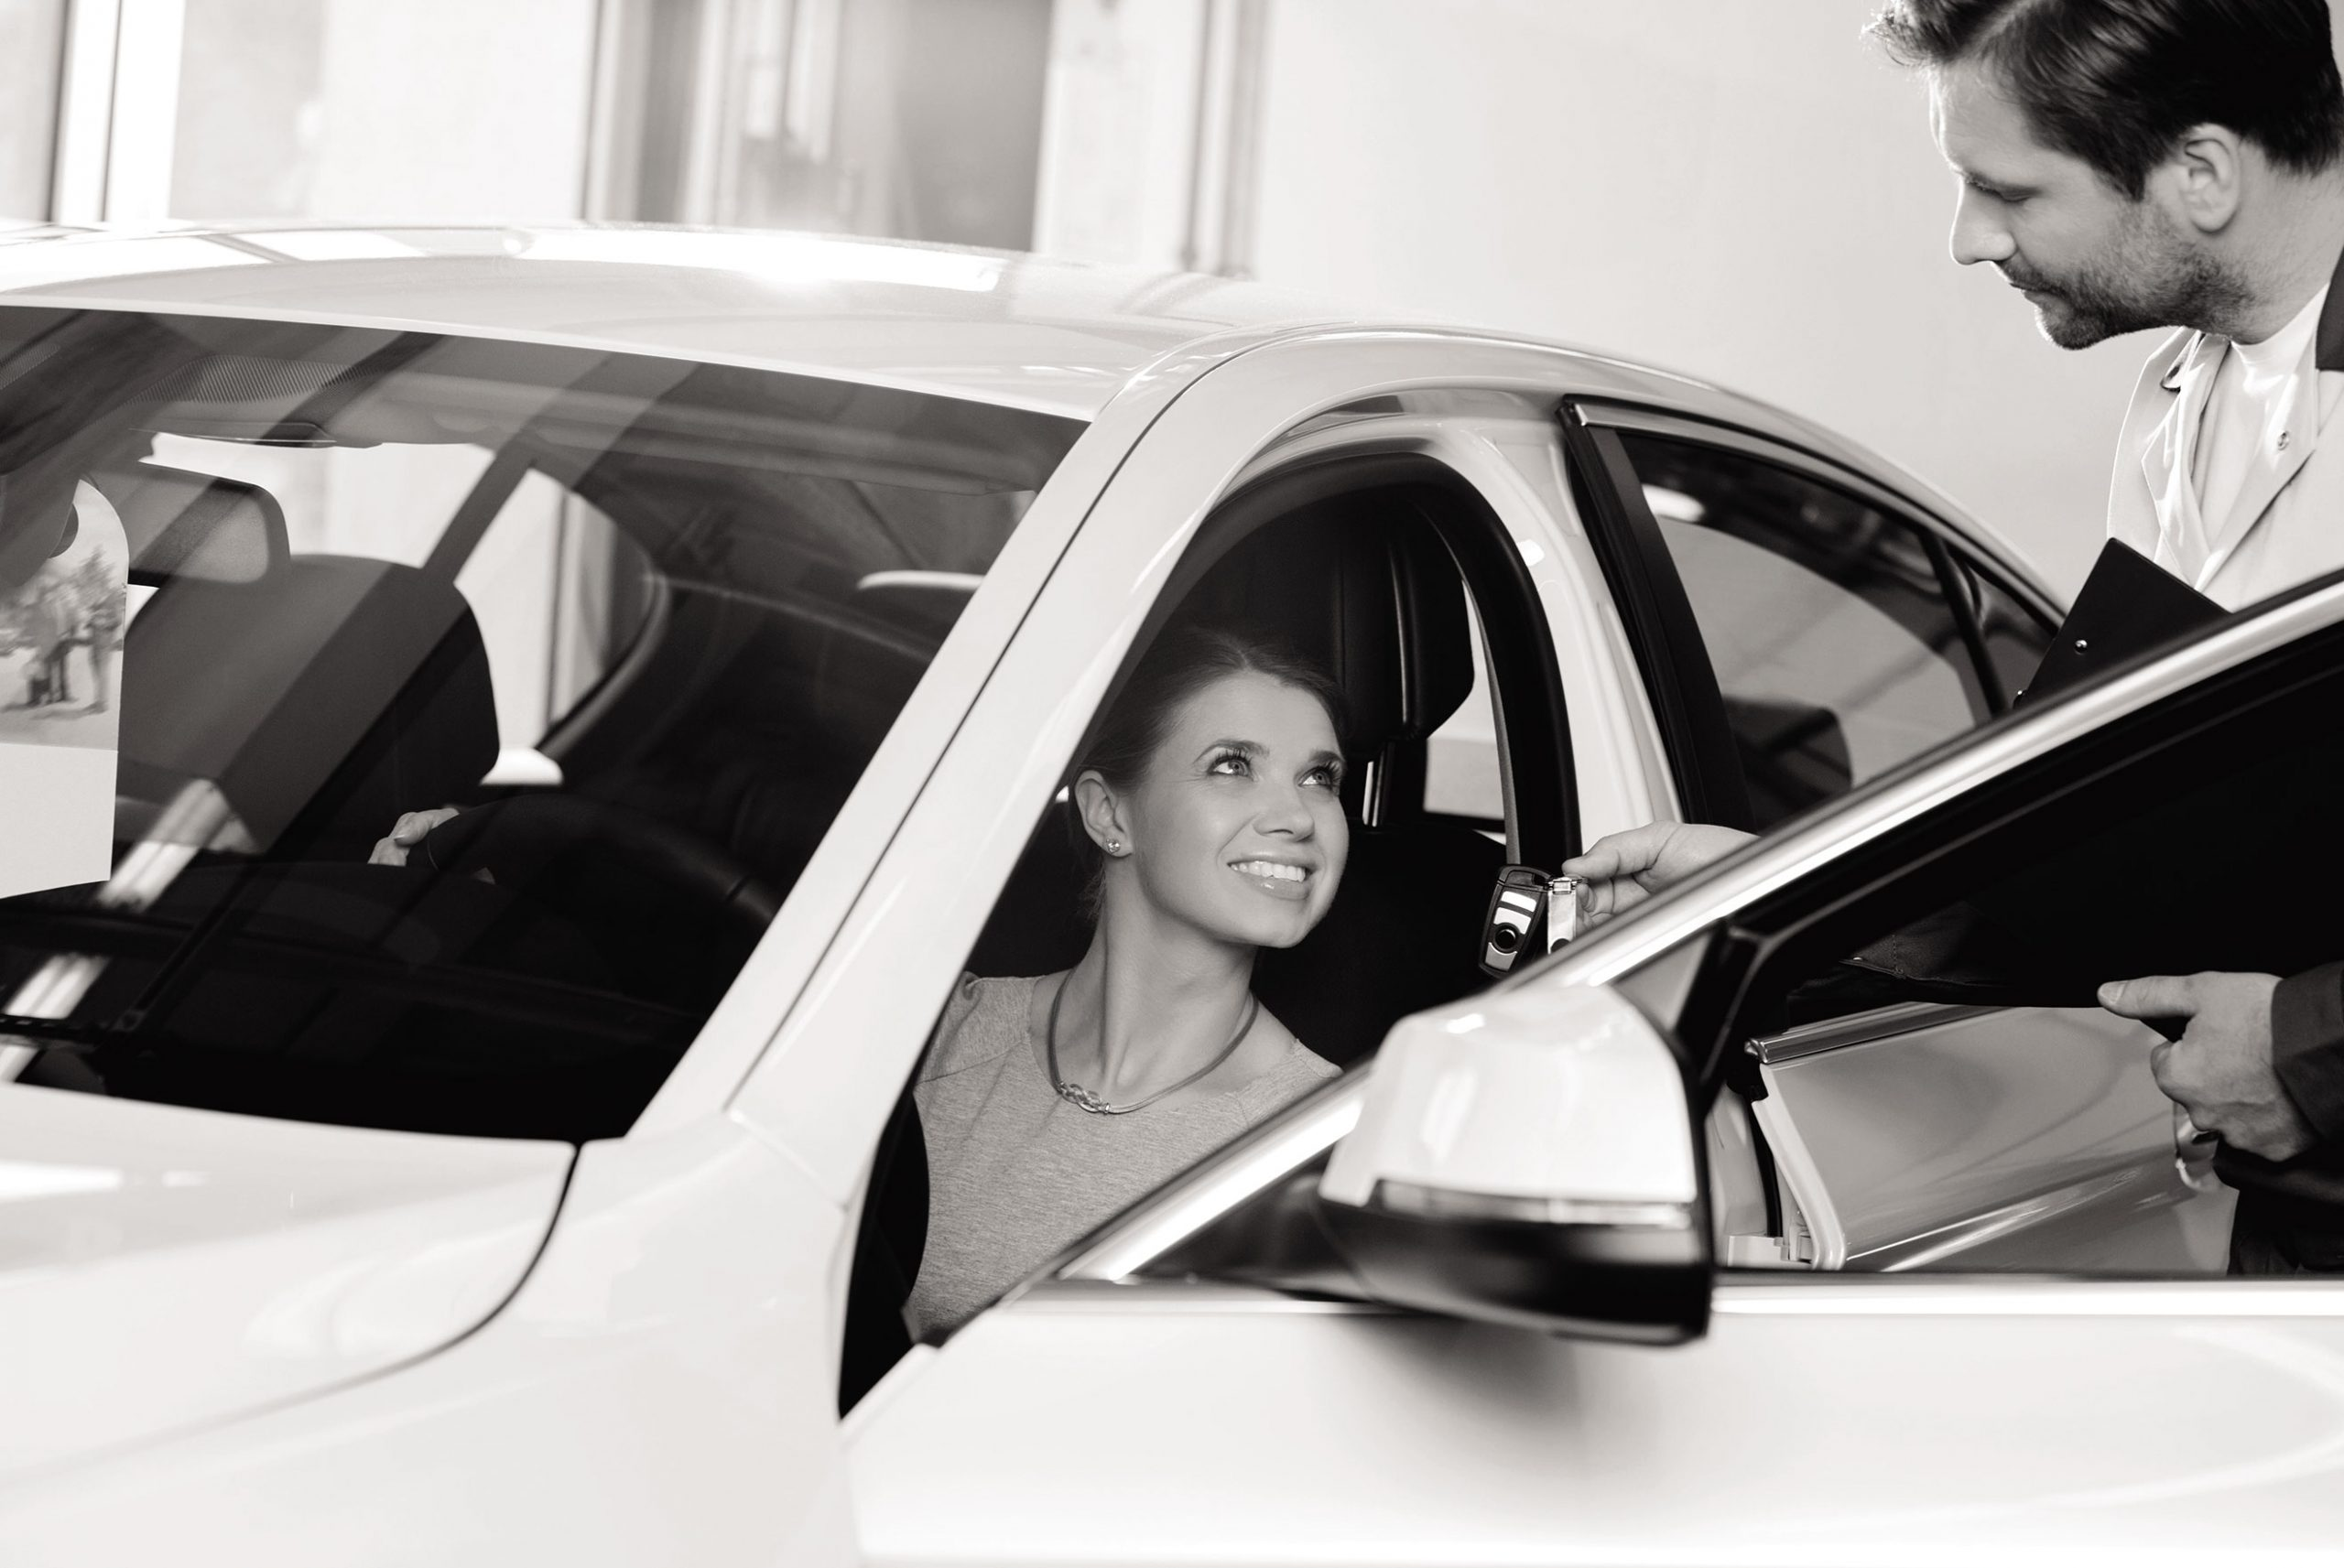 Pittsburgh Valet prides itself as the area's best professional parking service provider.